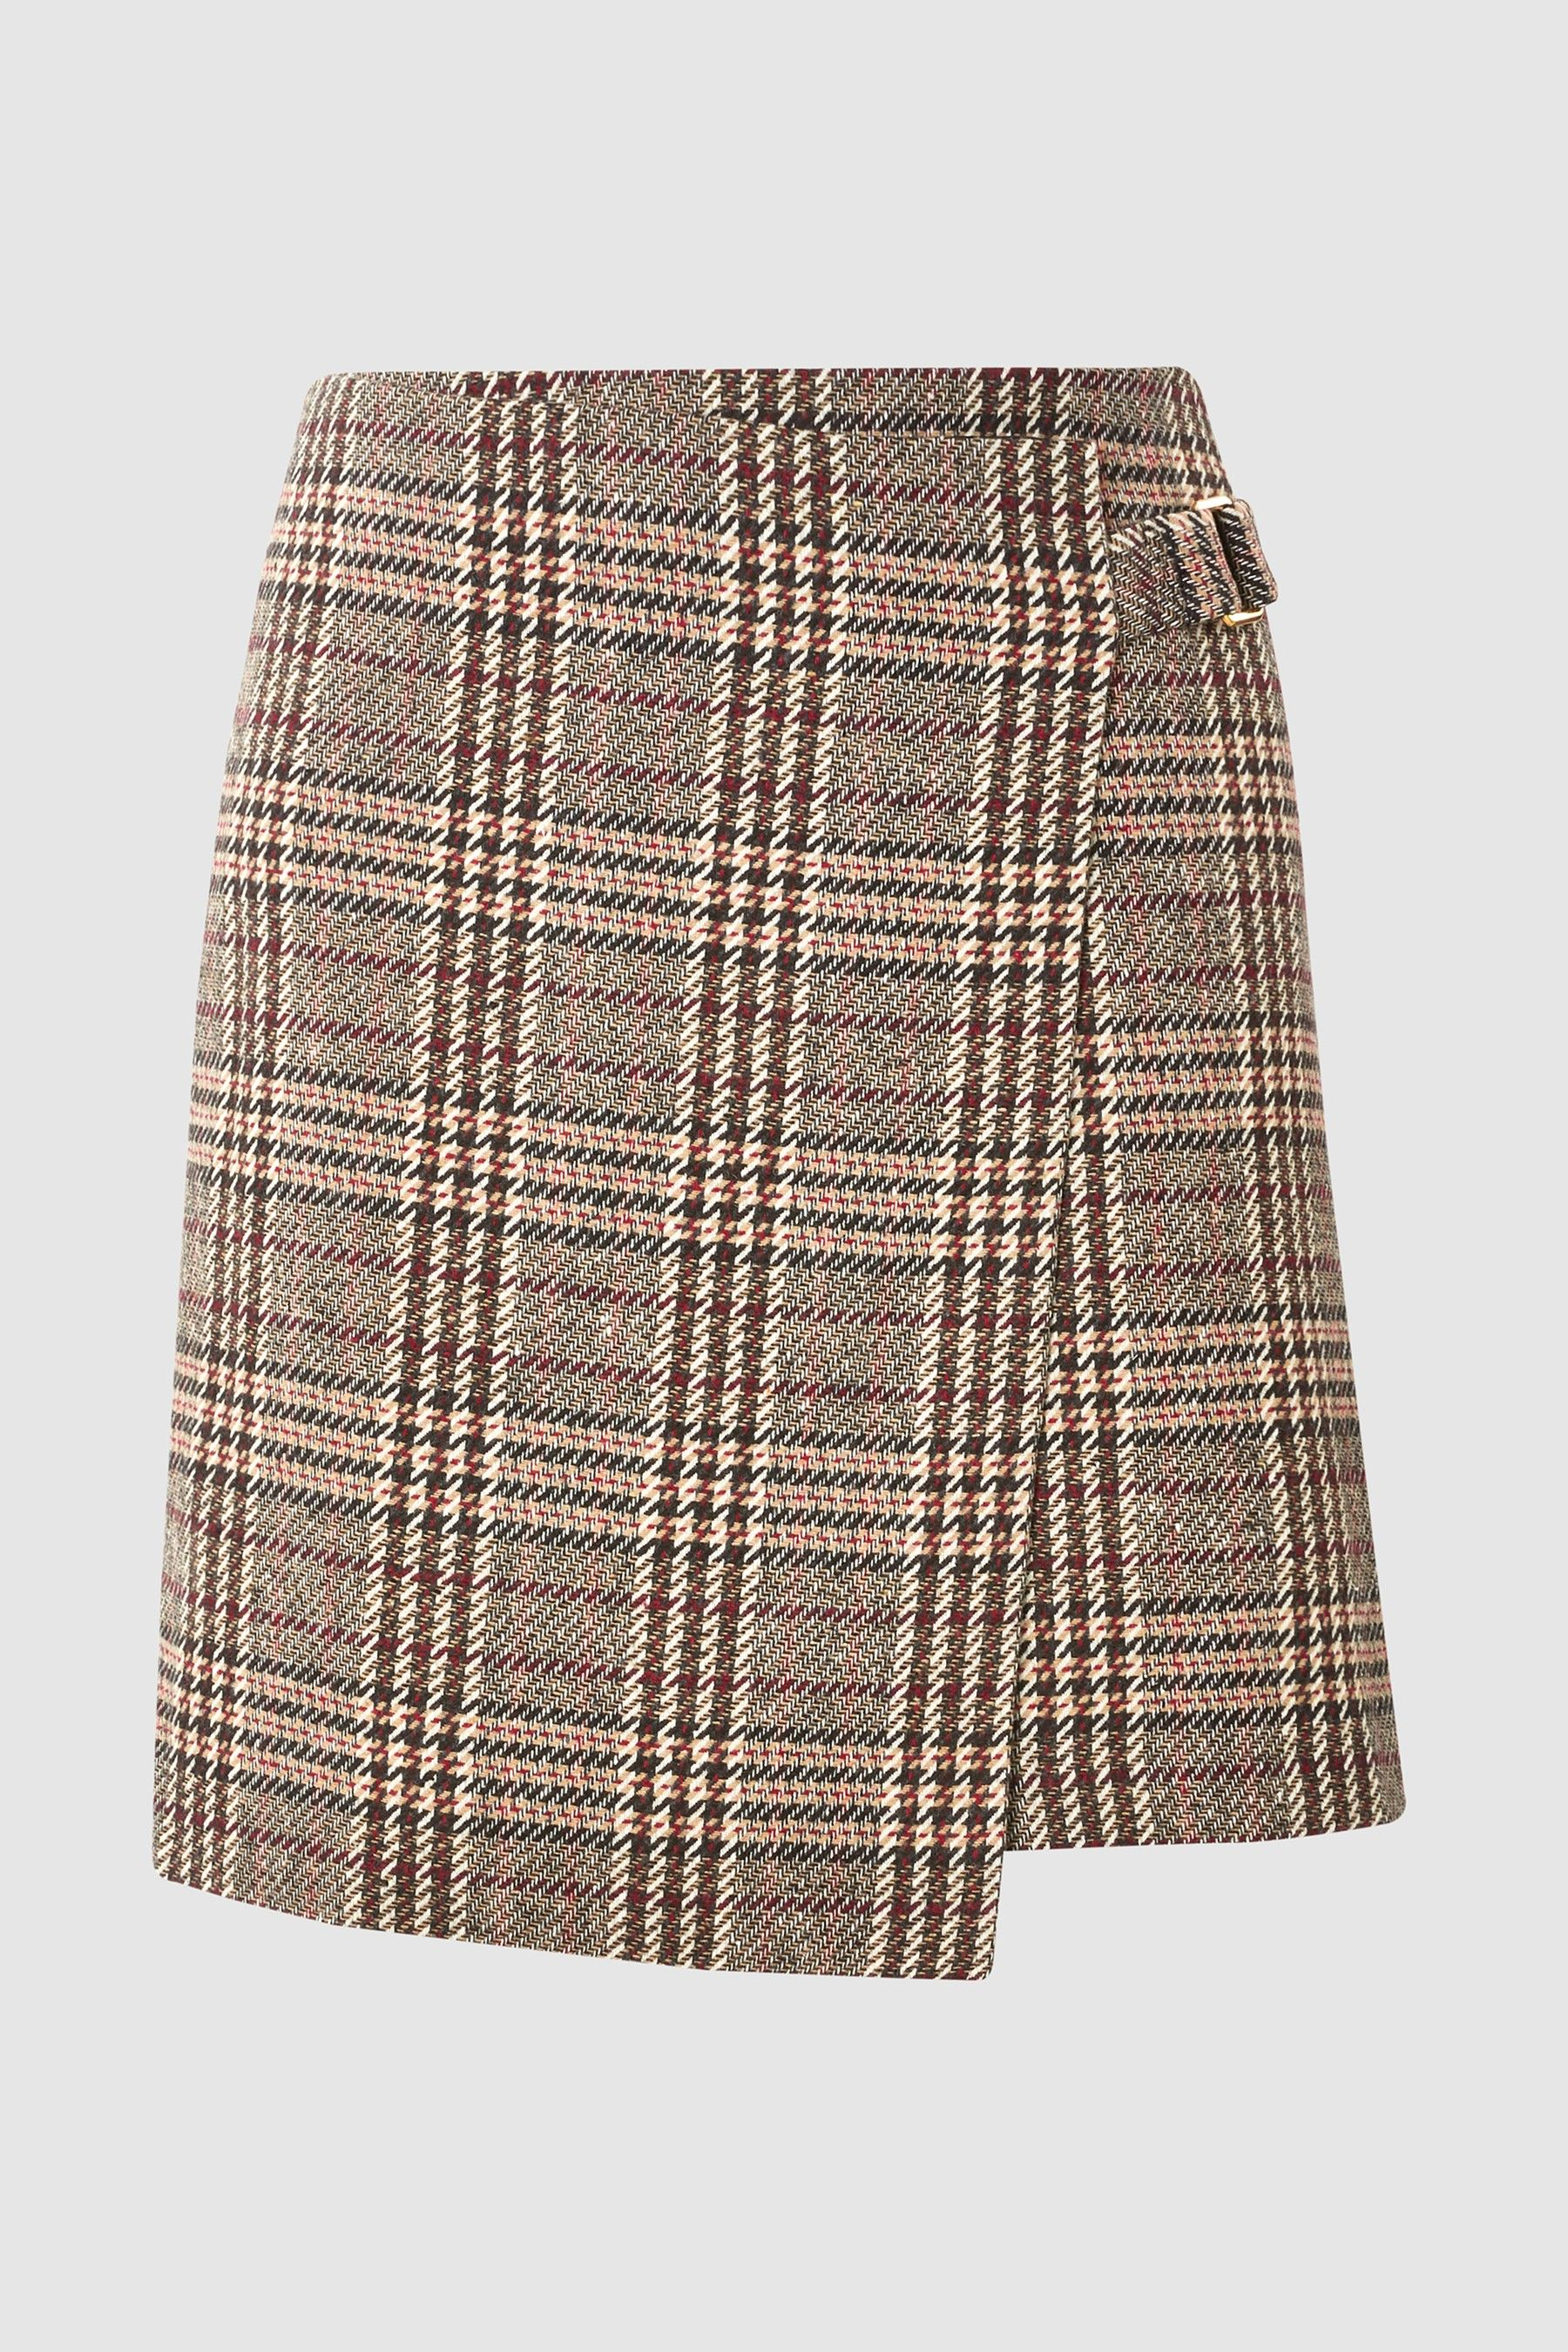 88c43f17137a4 Womens Next Beige Check Mini Skirt - Brown | Products in 2019 | Mini ...